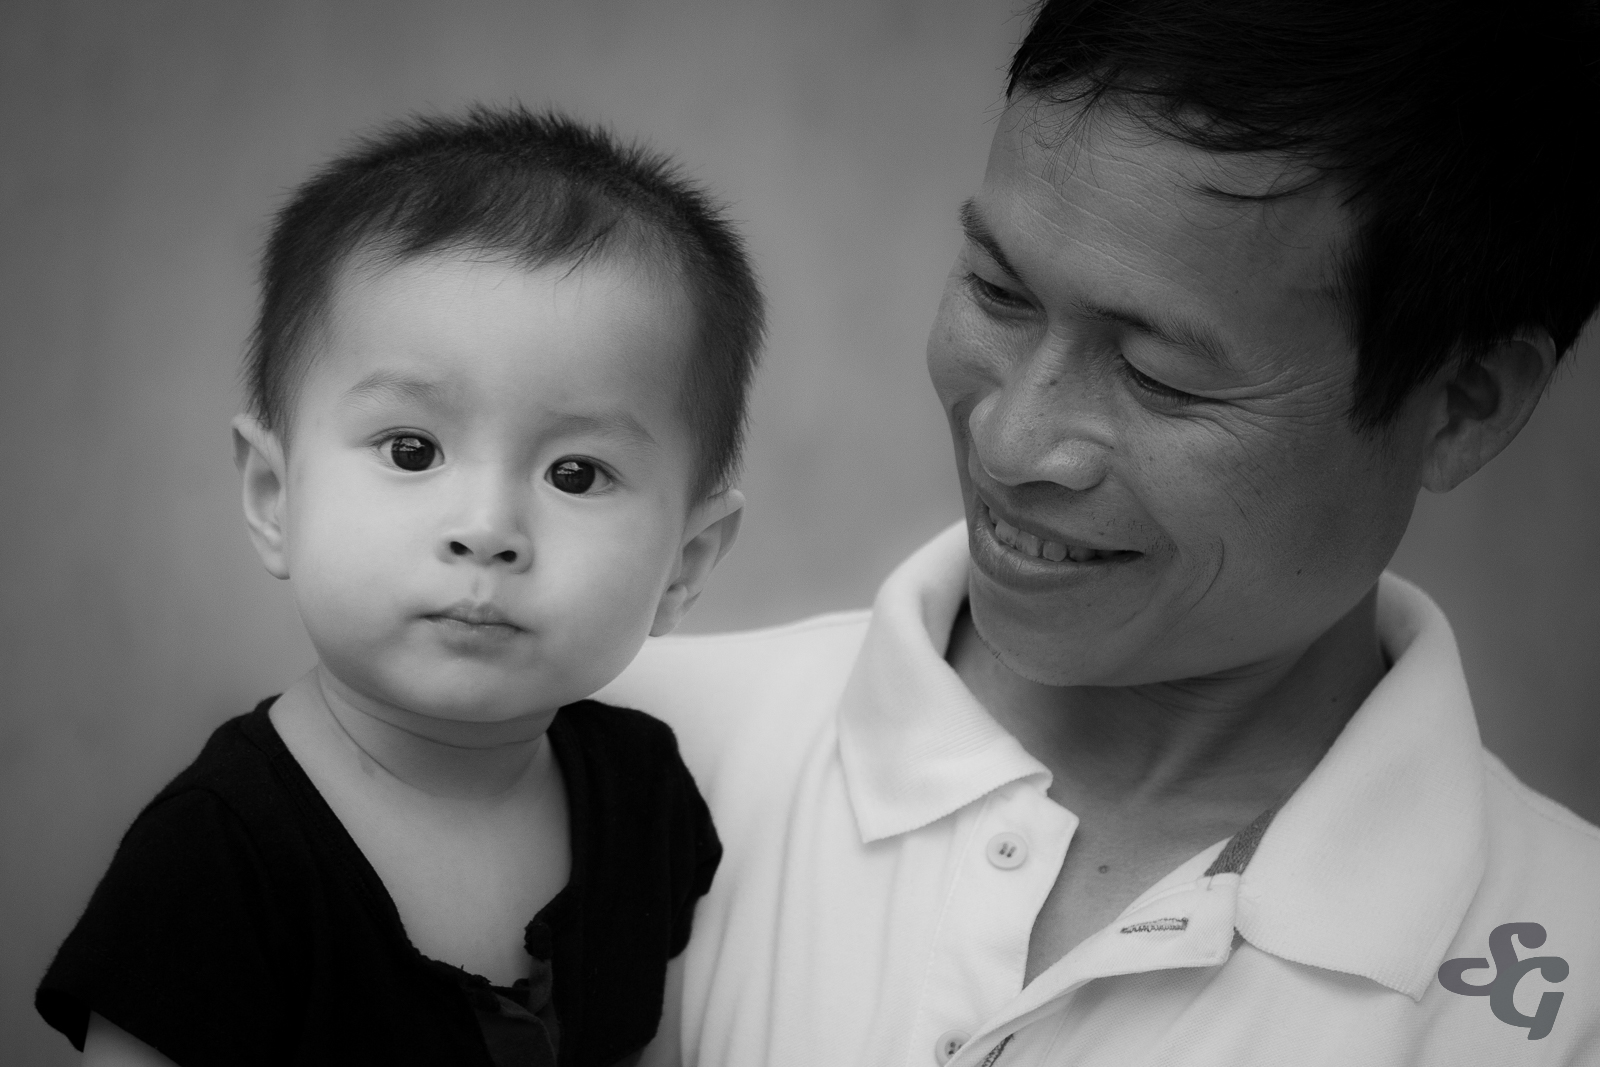 Father and son - Vietnam 2015